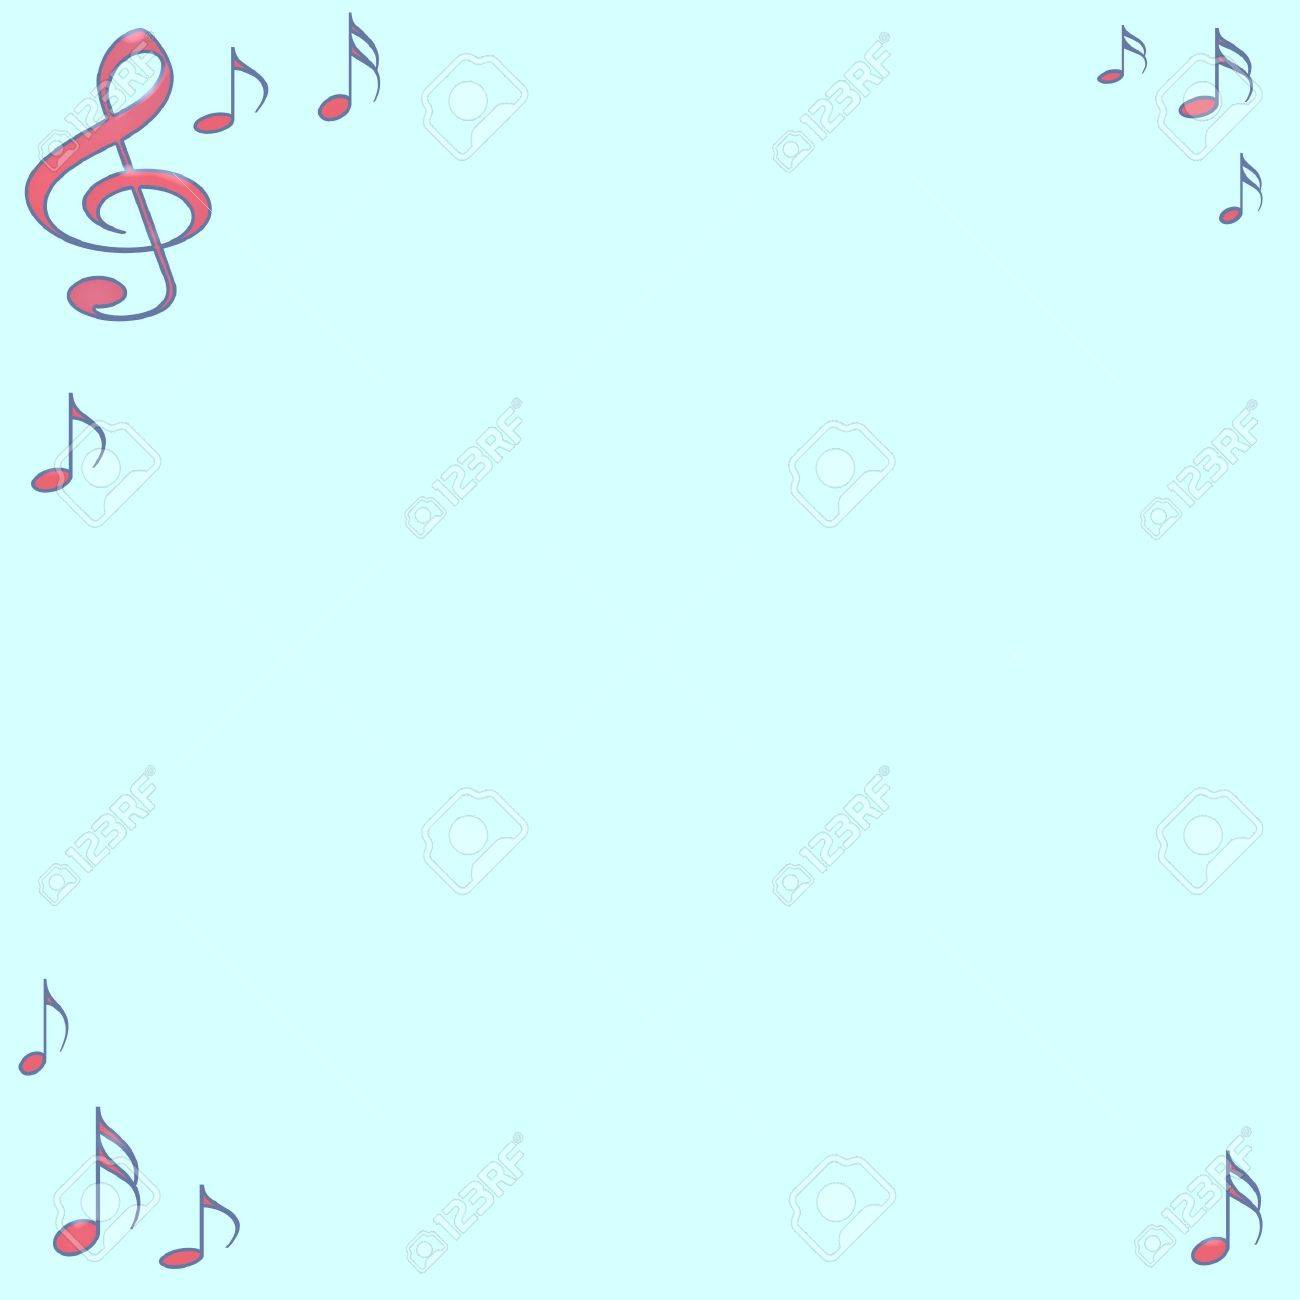 assorted abstract music notes border on blue background stock photo